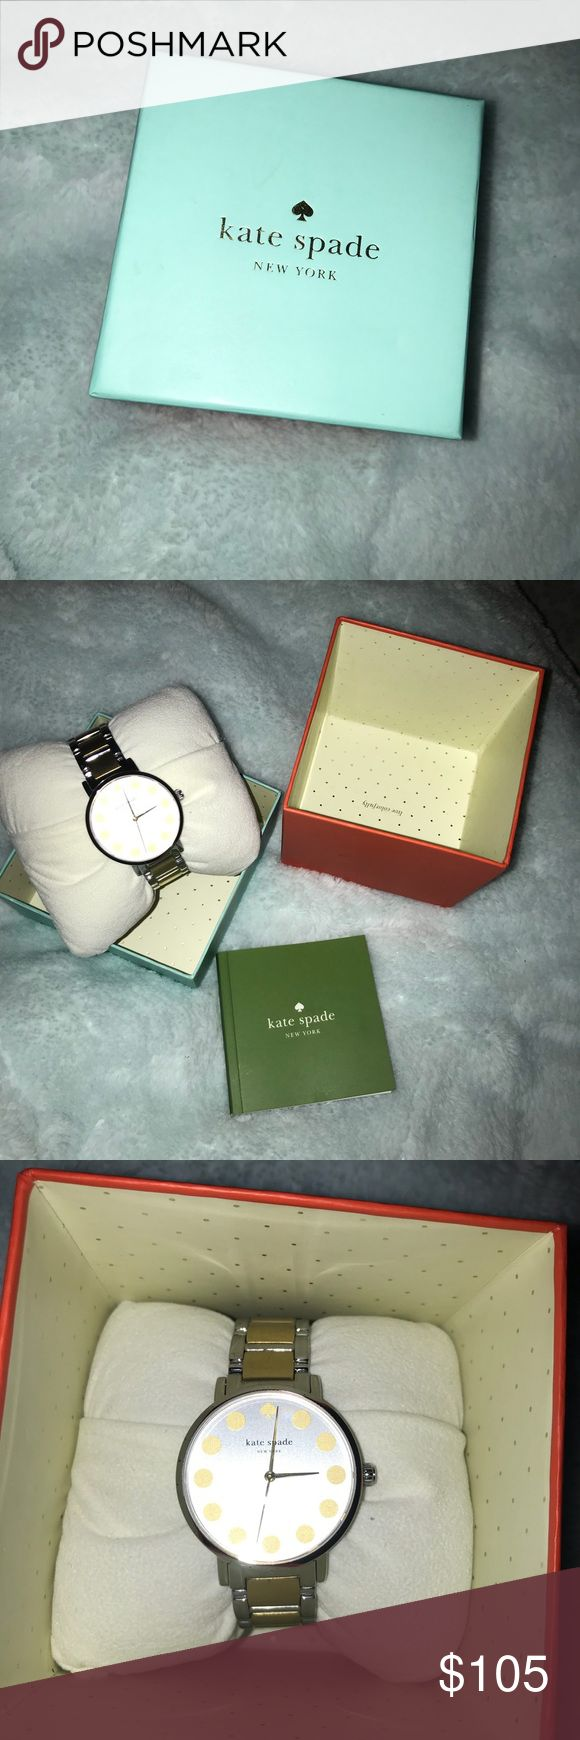 FLASH SALE!!!!! KATE SPADE WATCH Kate Spade watch. Comes with instructions manual. Does not come with batteries. Used maybe once. Water resistant, gold and silver. kate spade Accessories Watches